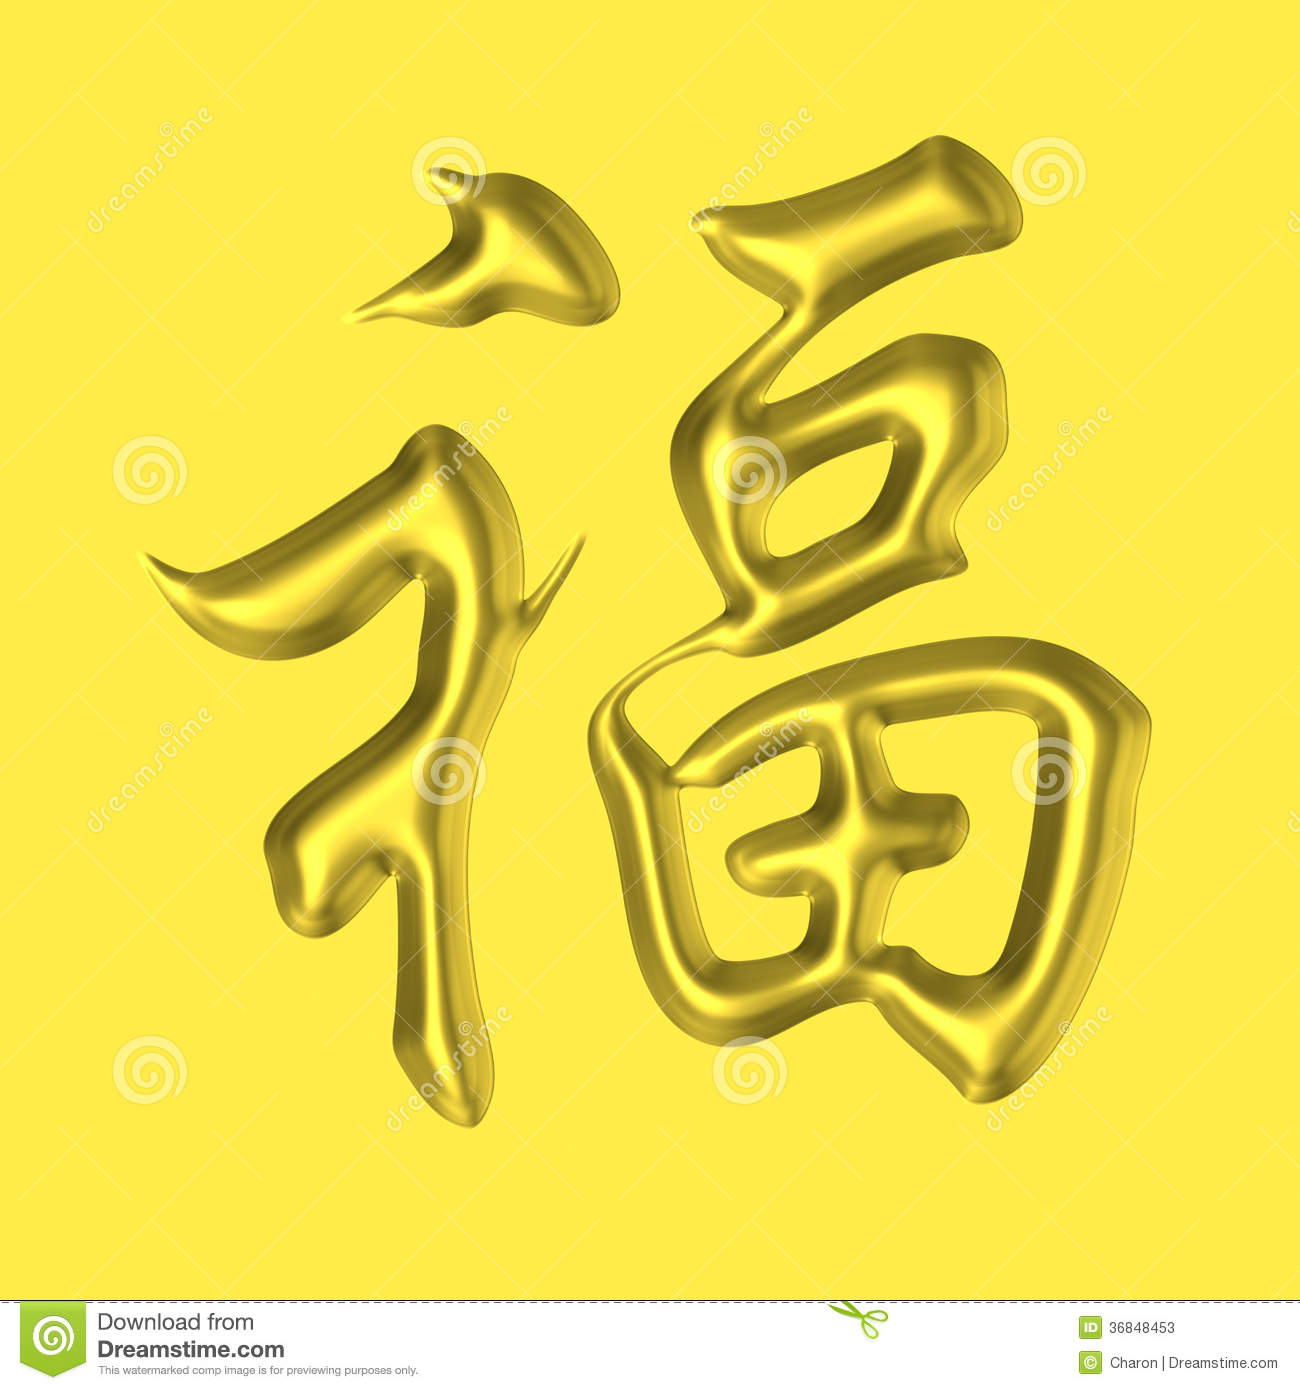 Golden Lucky Charm For Chinese New Year Stock Image Illustration